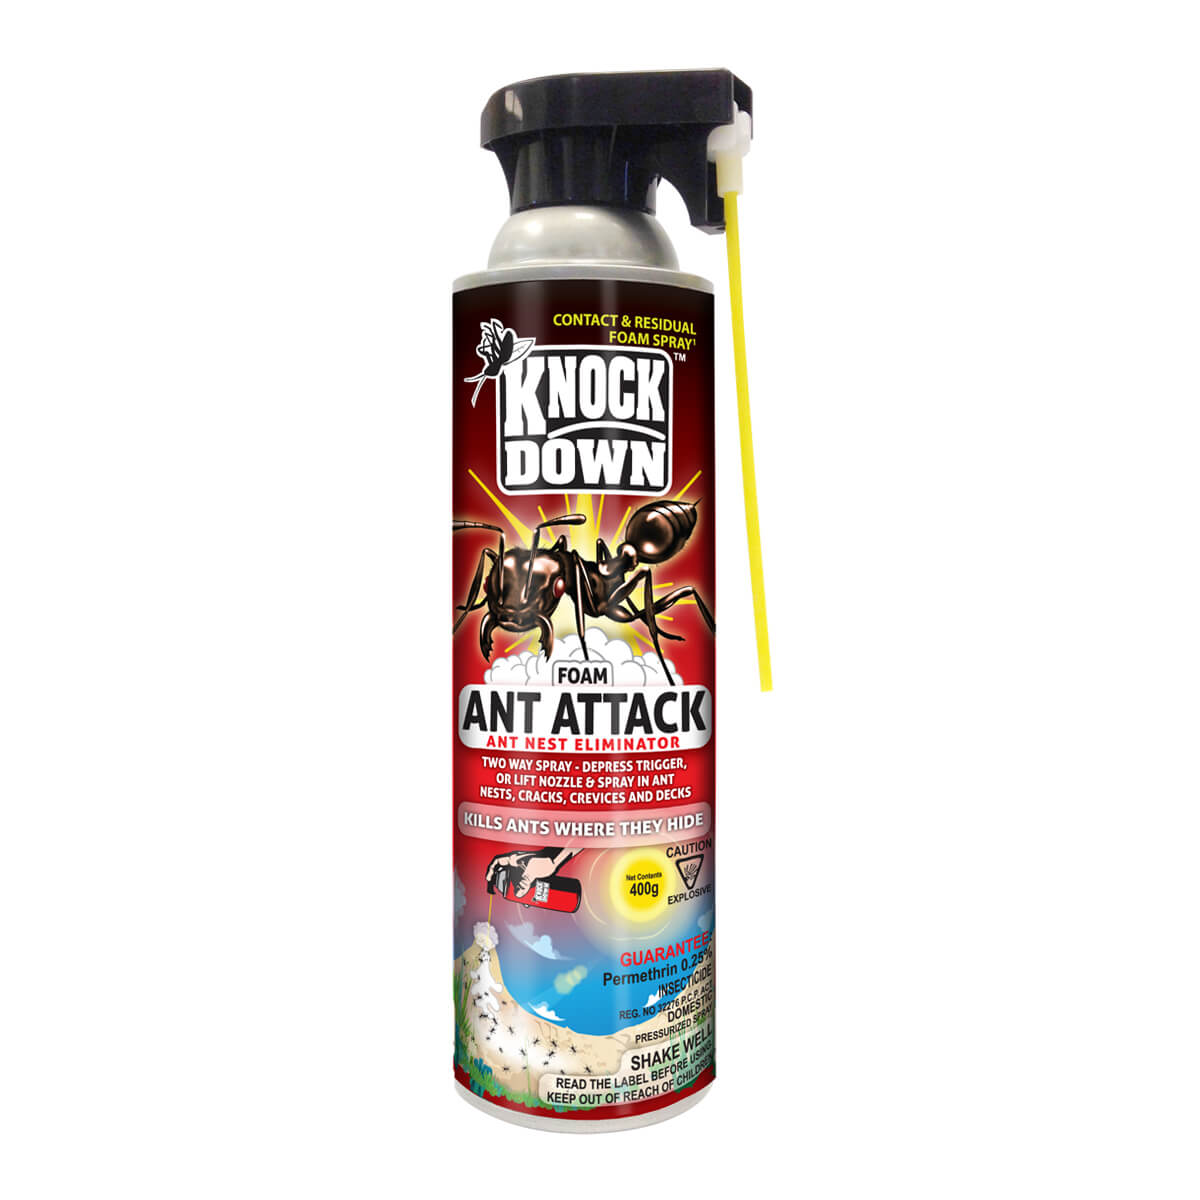 Knock Down Ant Attack - Ant nest eliminator foam 400 g